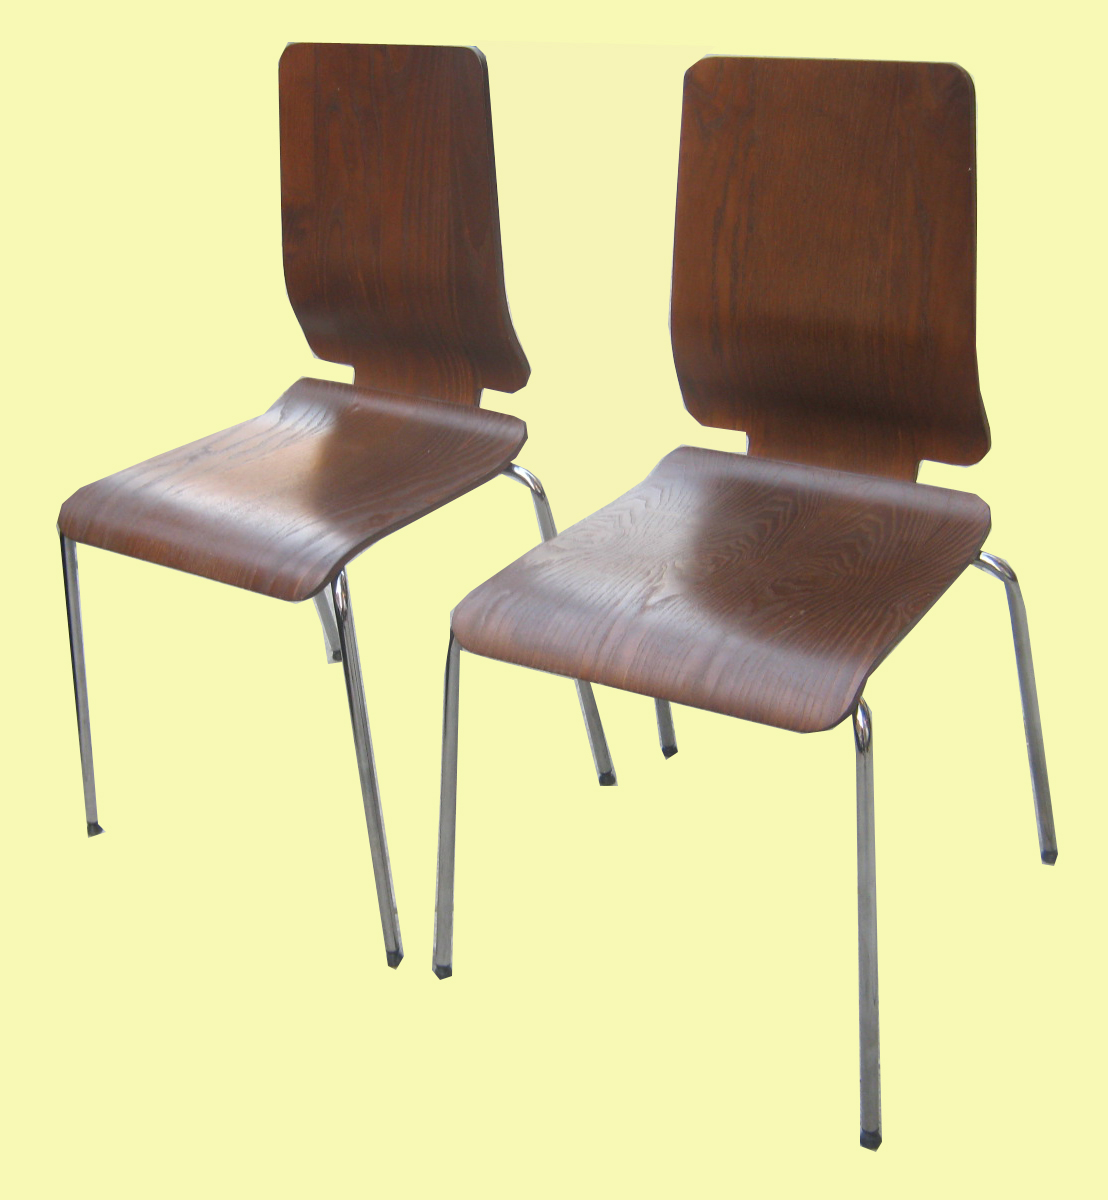 Vintage Style Dining Chairs: Uhuru Furniture & Collectibles: Retro Style DIning Chairs SOLD